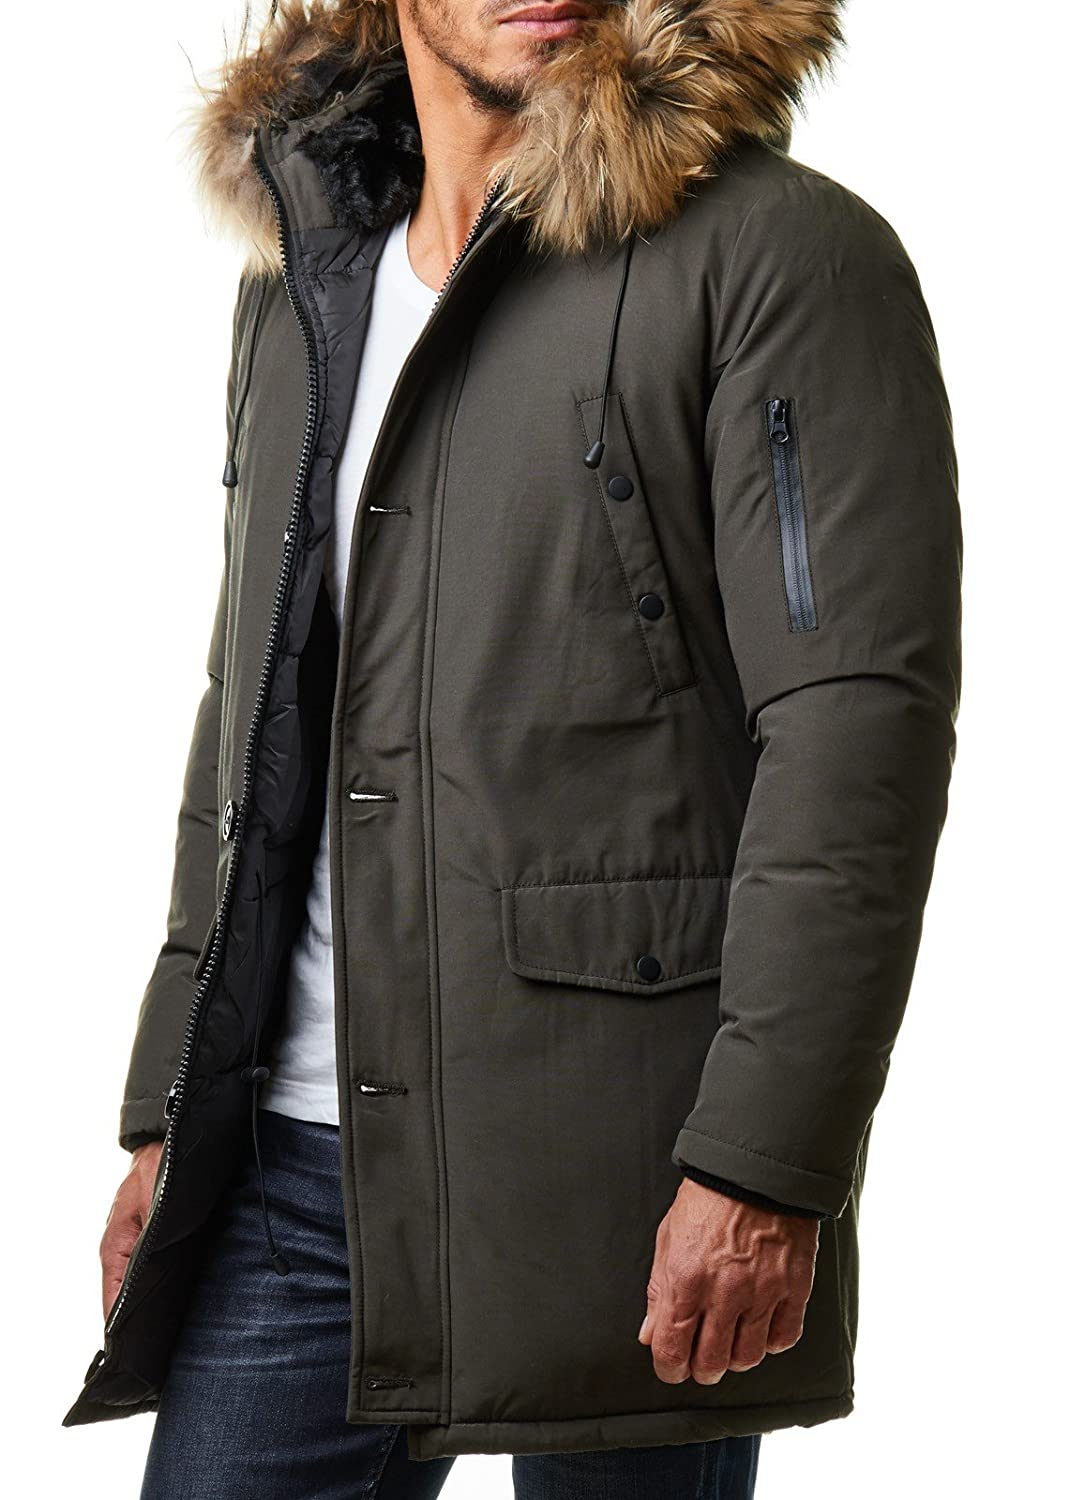 Winter jacke fell herren